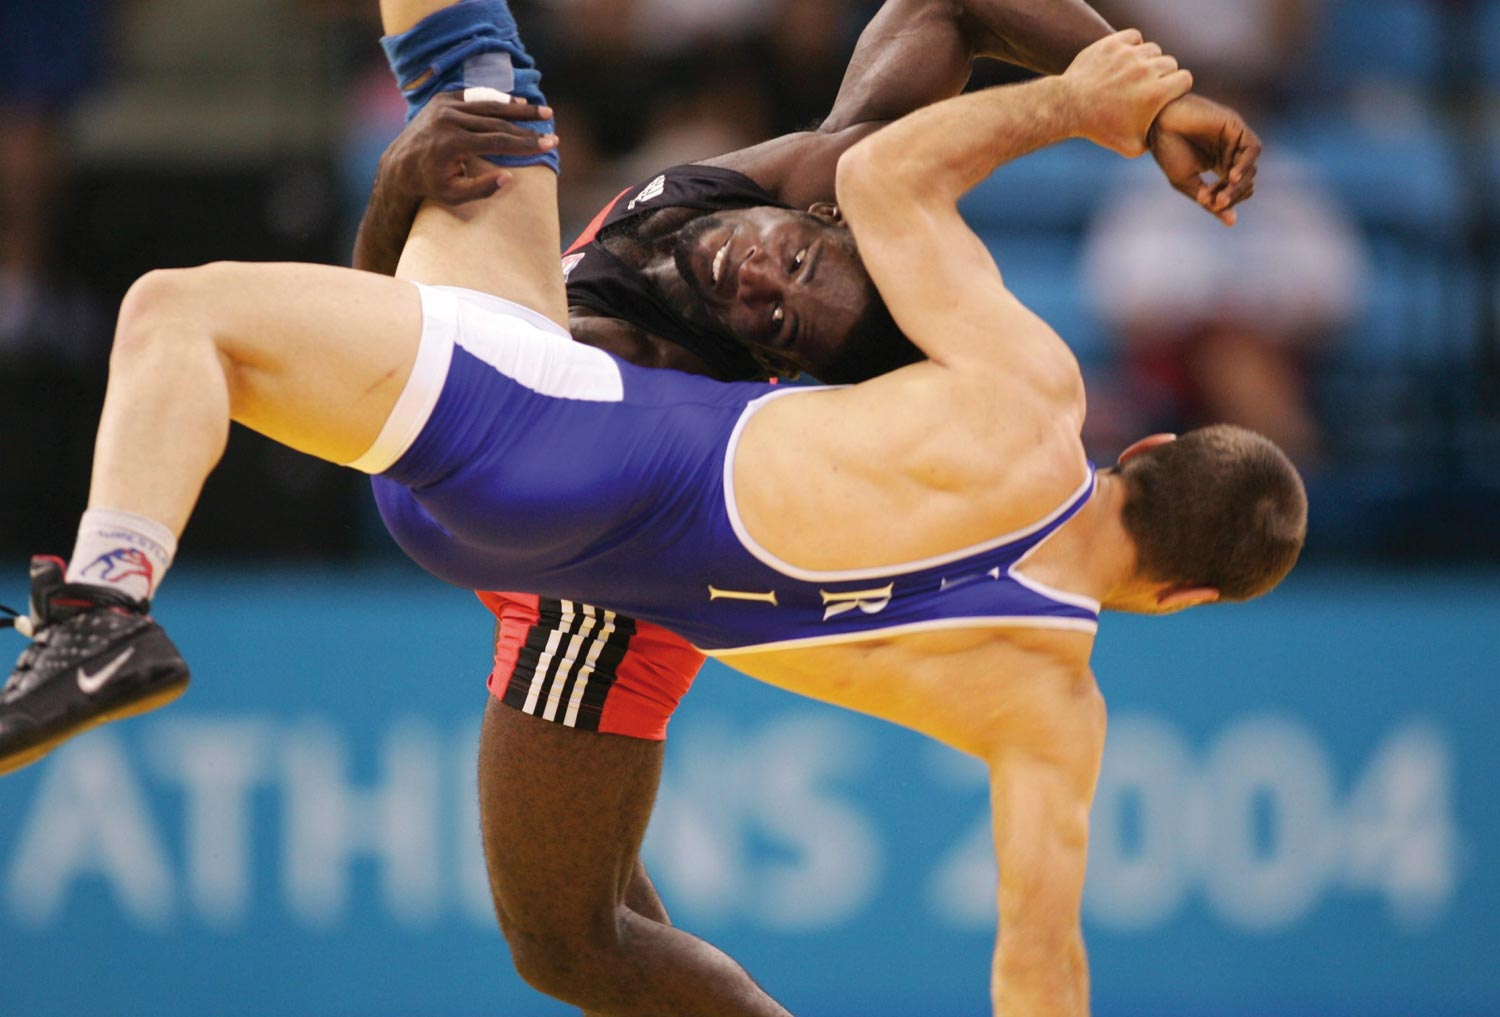 Cuban wrestler Yandro Quintana, red, defeats Masuod Jokar to win gold in the men`s freestyle 60kg at the 2004 Summer Olympics. Photograph courtesy Andreas Rentz/Bongarts/Getty Images